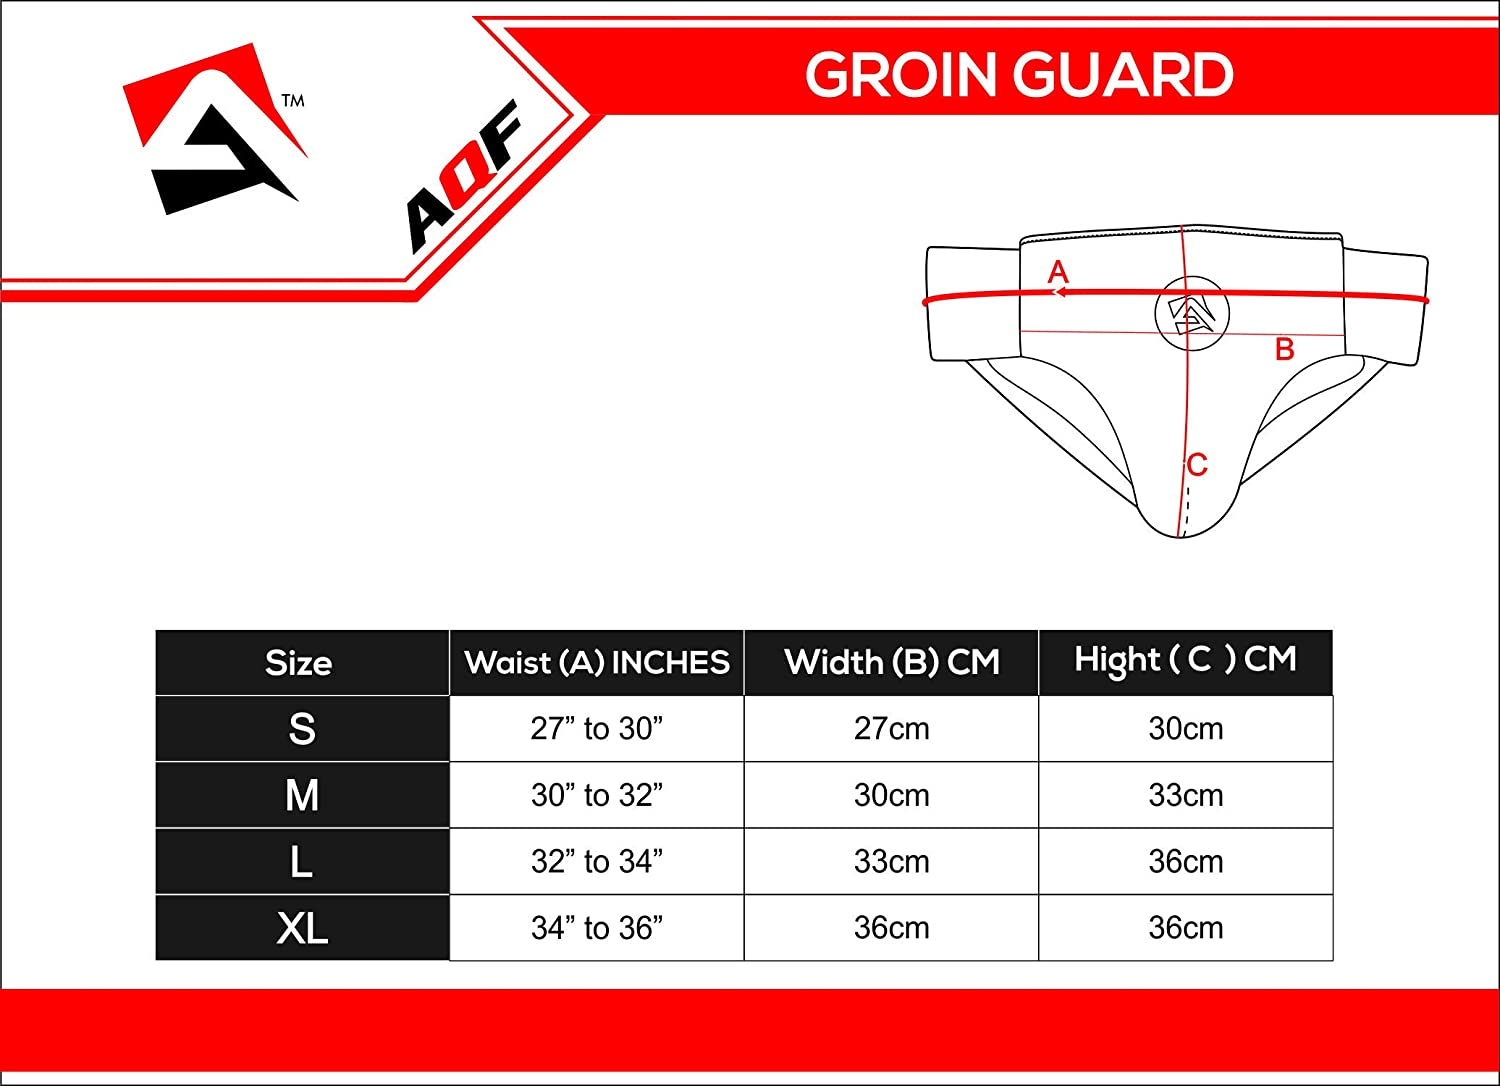 AQF Protector de Groin Guard Boxing MMA Abdominal Groin Cup Jock Strap Cup Muay Thai Abdominal Protector Adulto Shock Supporter